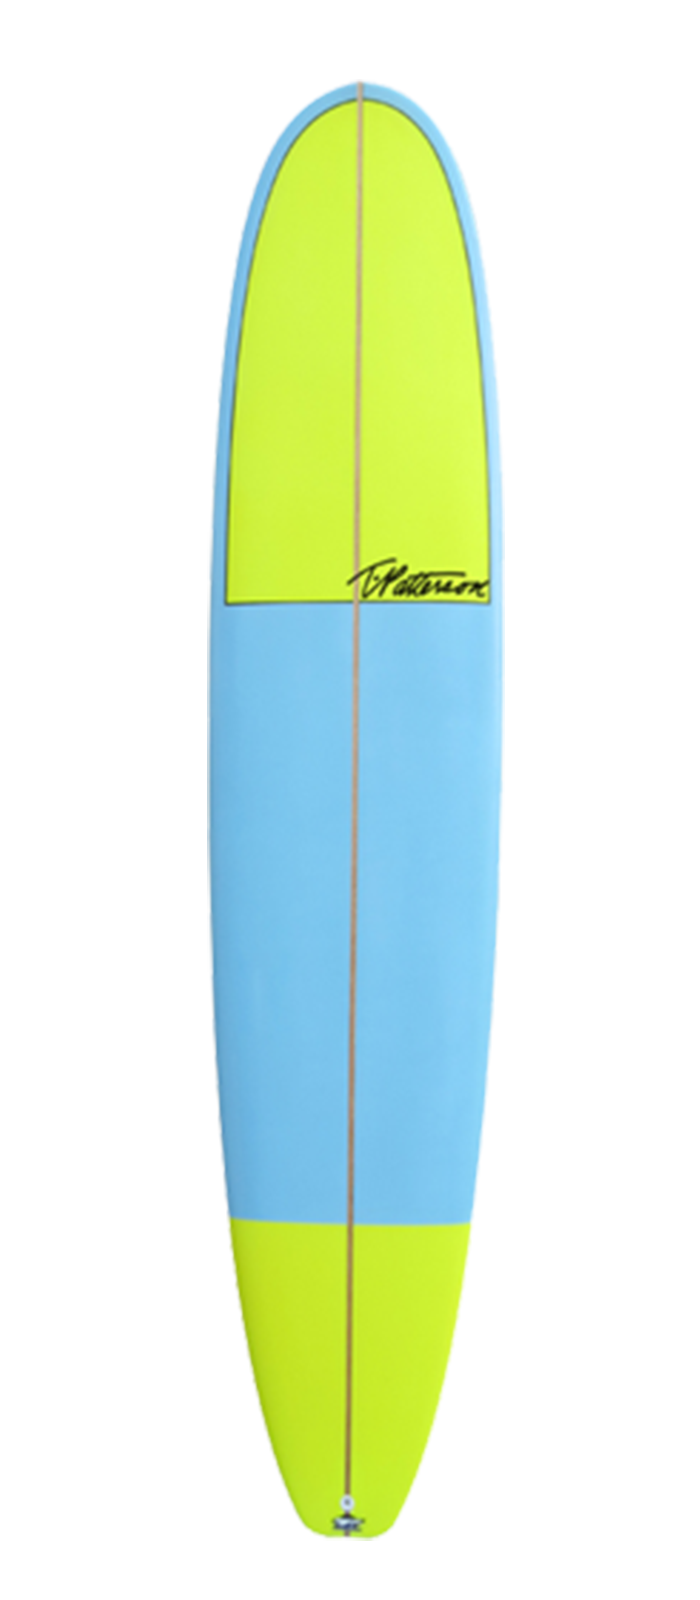 Cali Noserider surfboard model deck